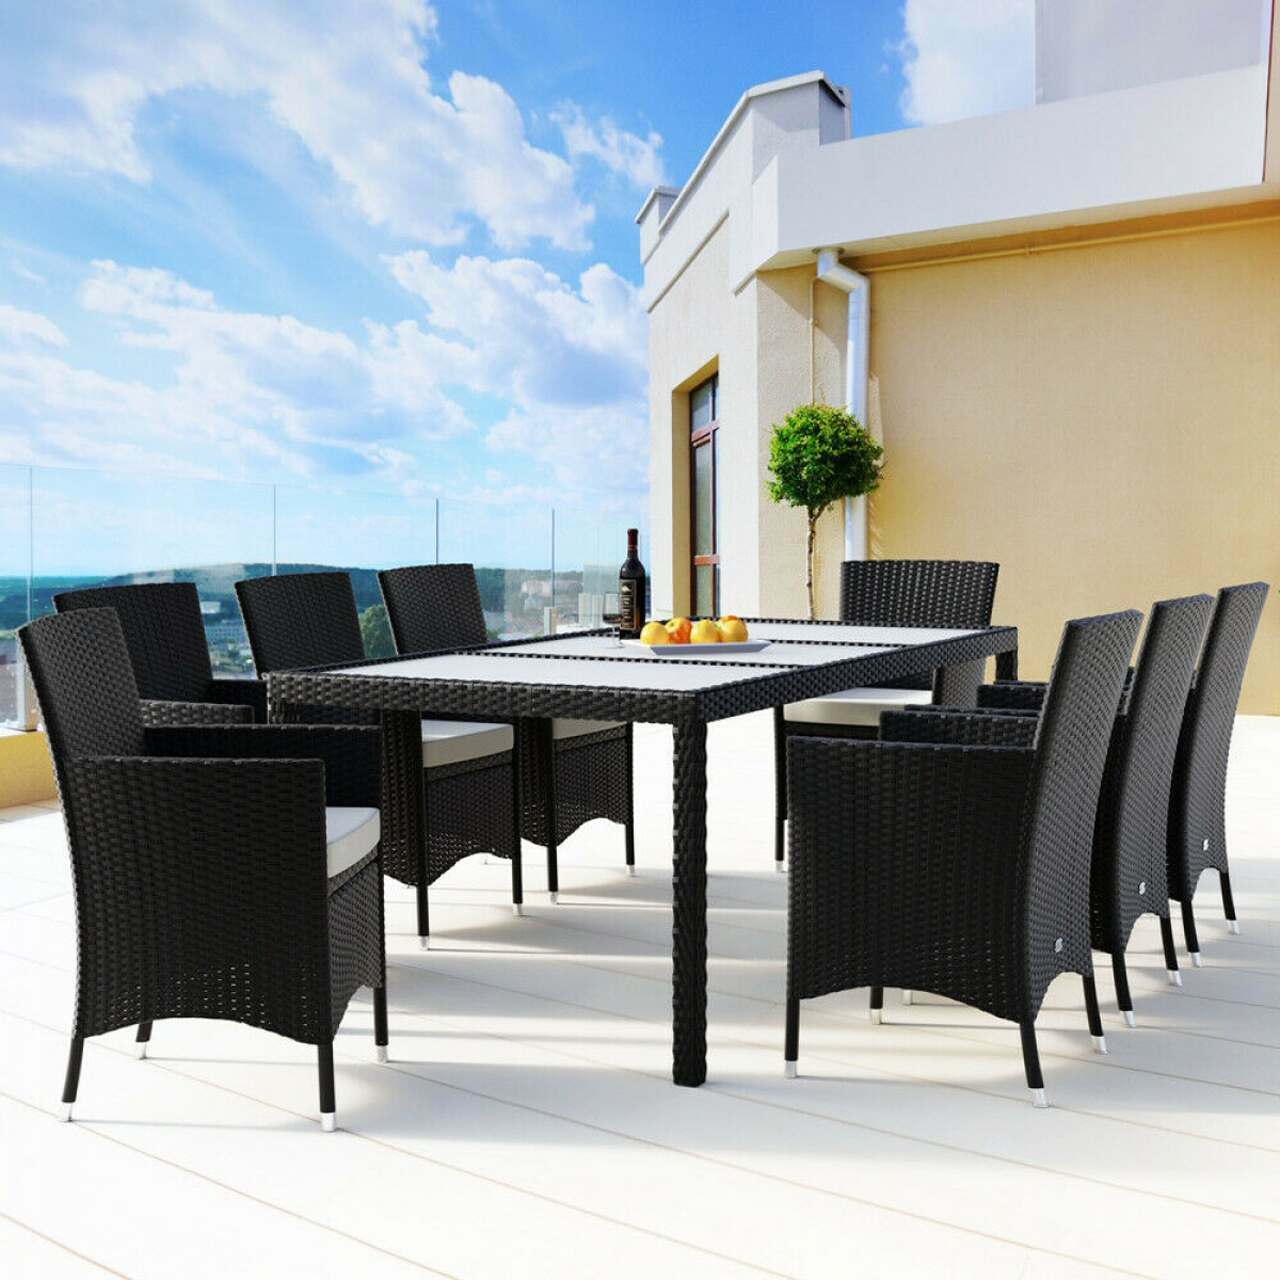 Harrier Rattan Garden Dining Table & Chair Set [6/8 Seater]